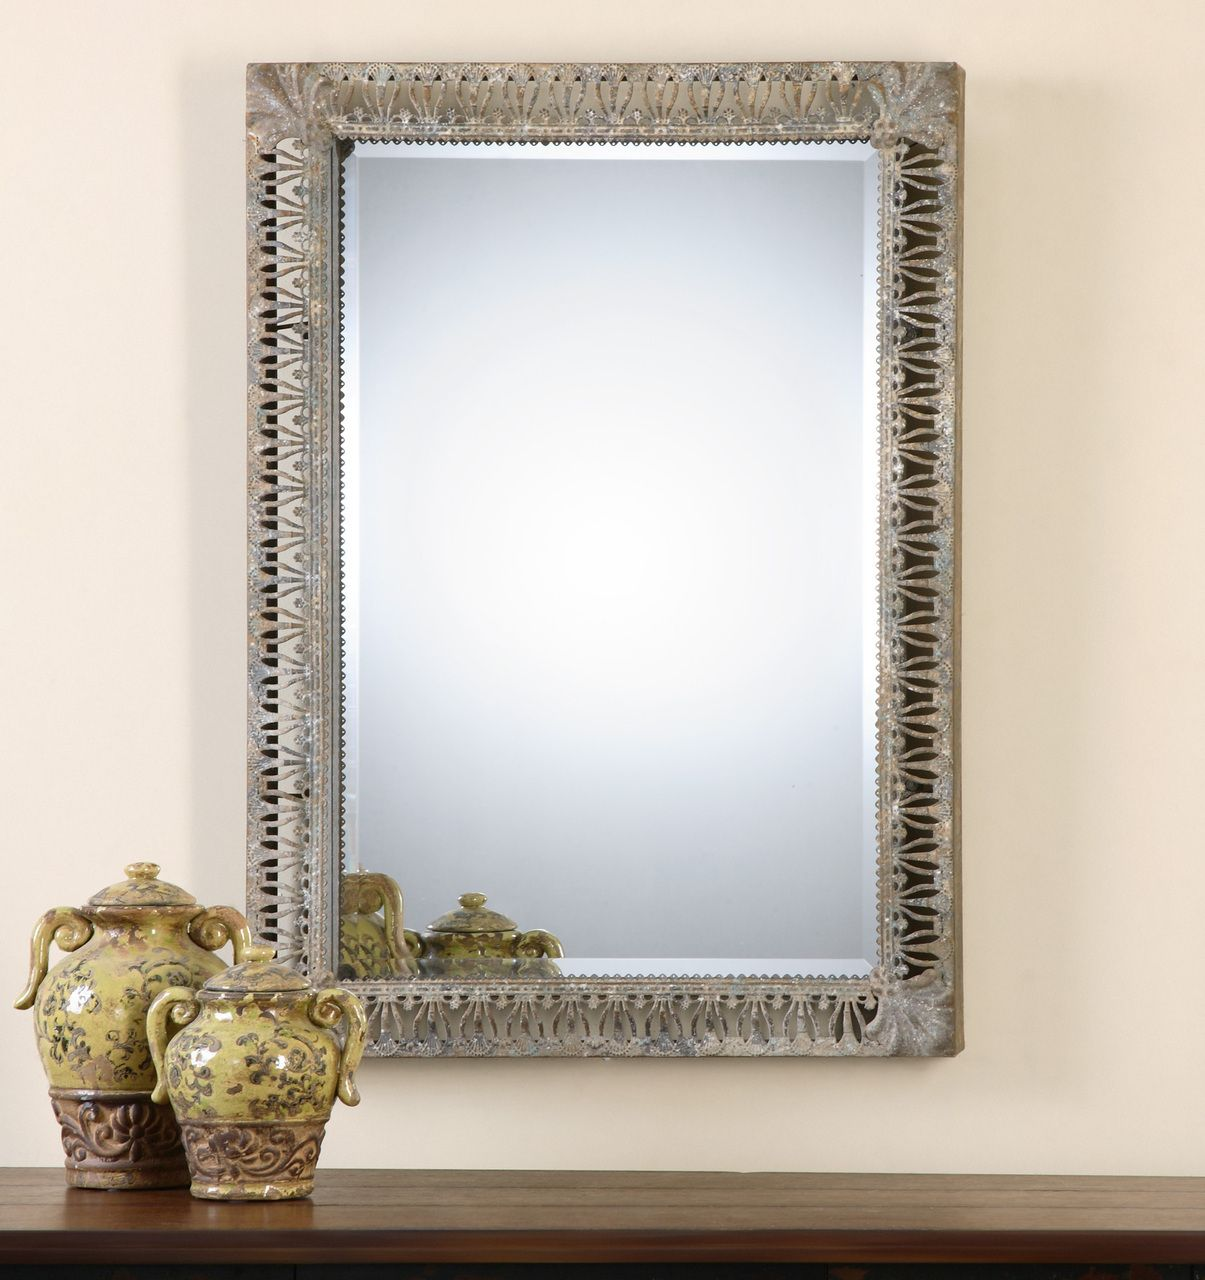 Charmant Grosseto Distressed Metal Mirror   Premier Home Decor